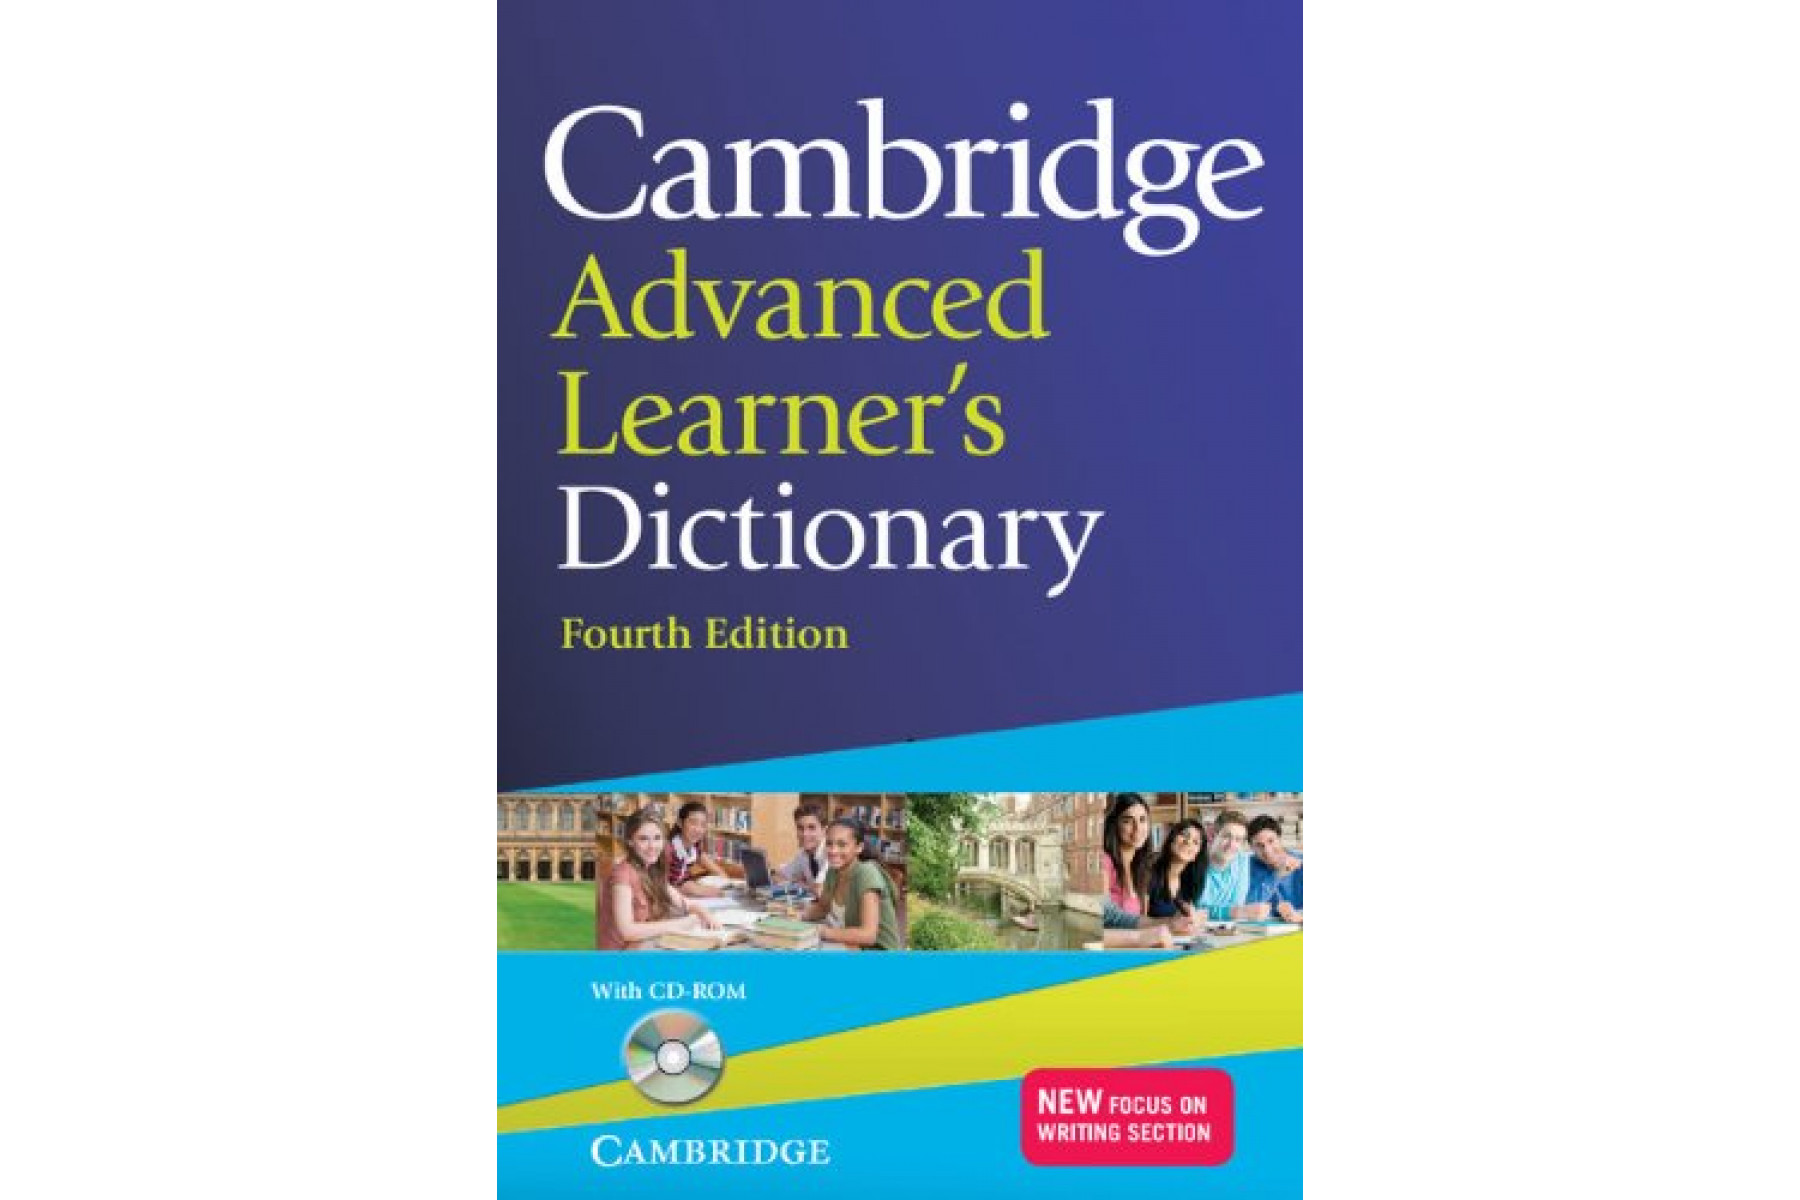 Cambridge Advanced Learner's Dictionary with CD-ROM